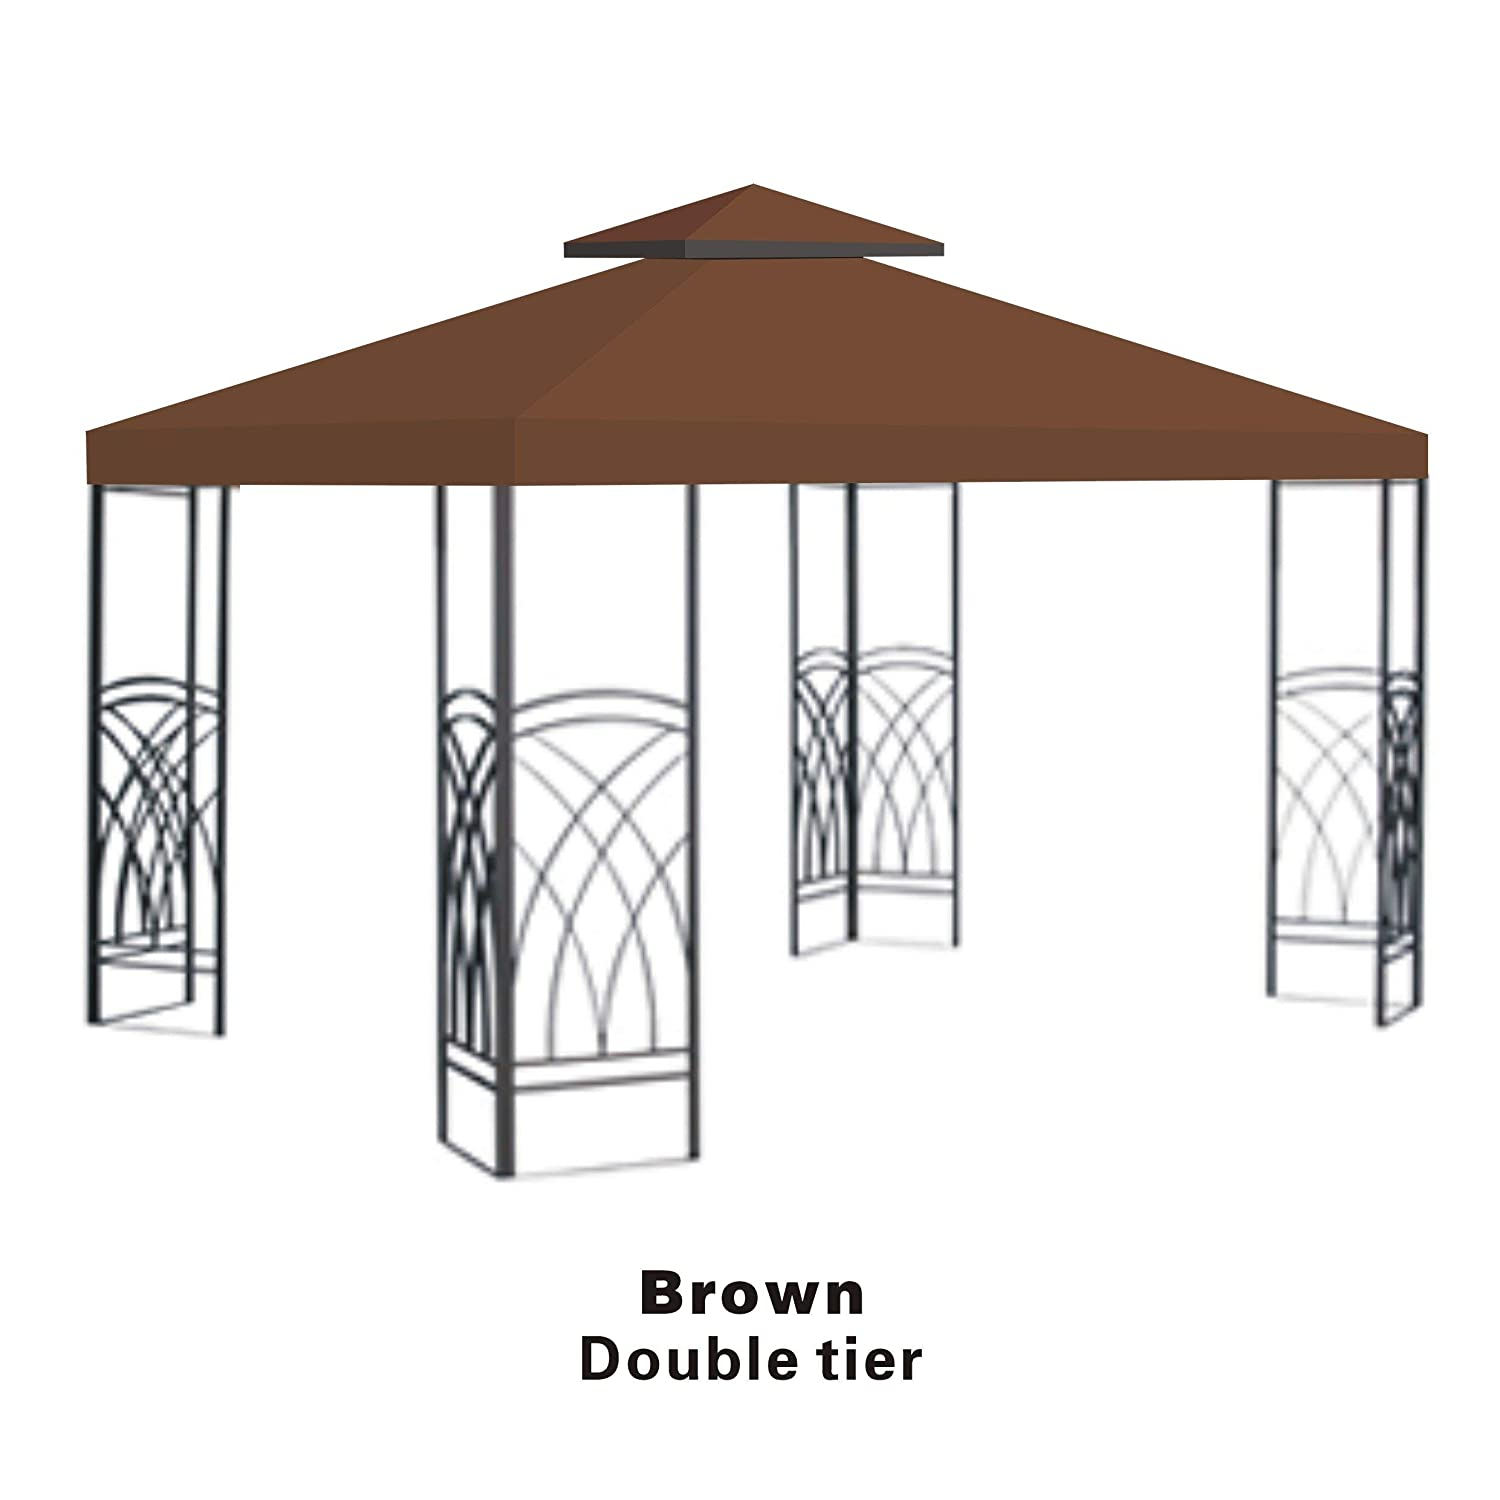 BenefitUSA Brown Double Tier Replacement 10'X10'Gazebo Canopy top Patio Pavilion Cover Sunshade plyester G240-BRW